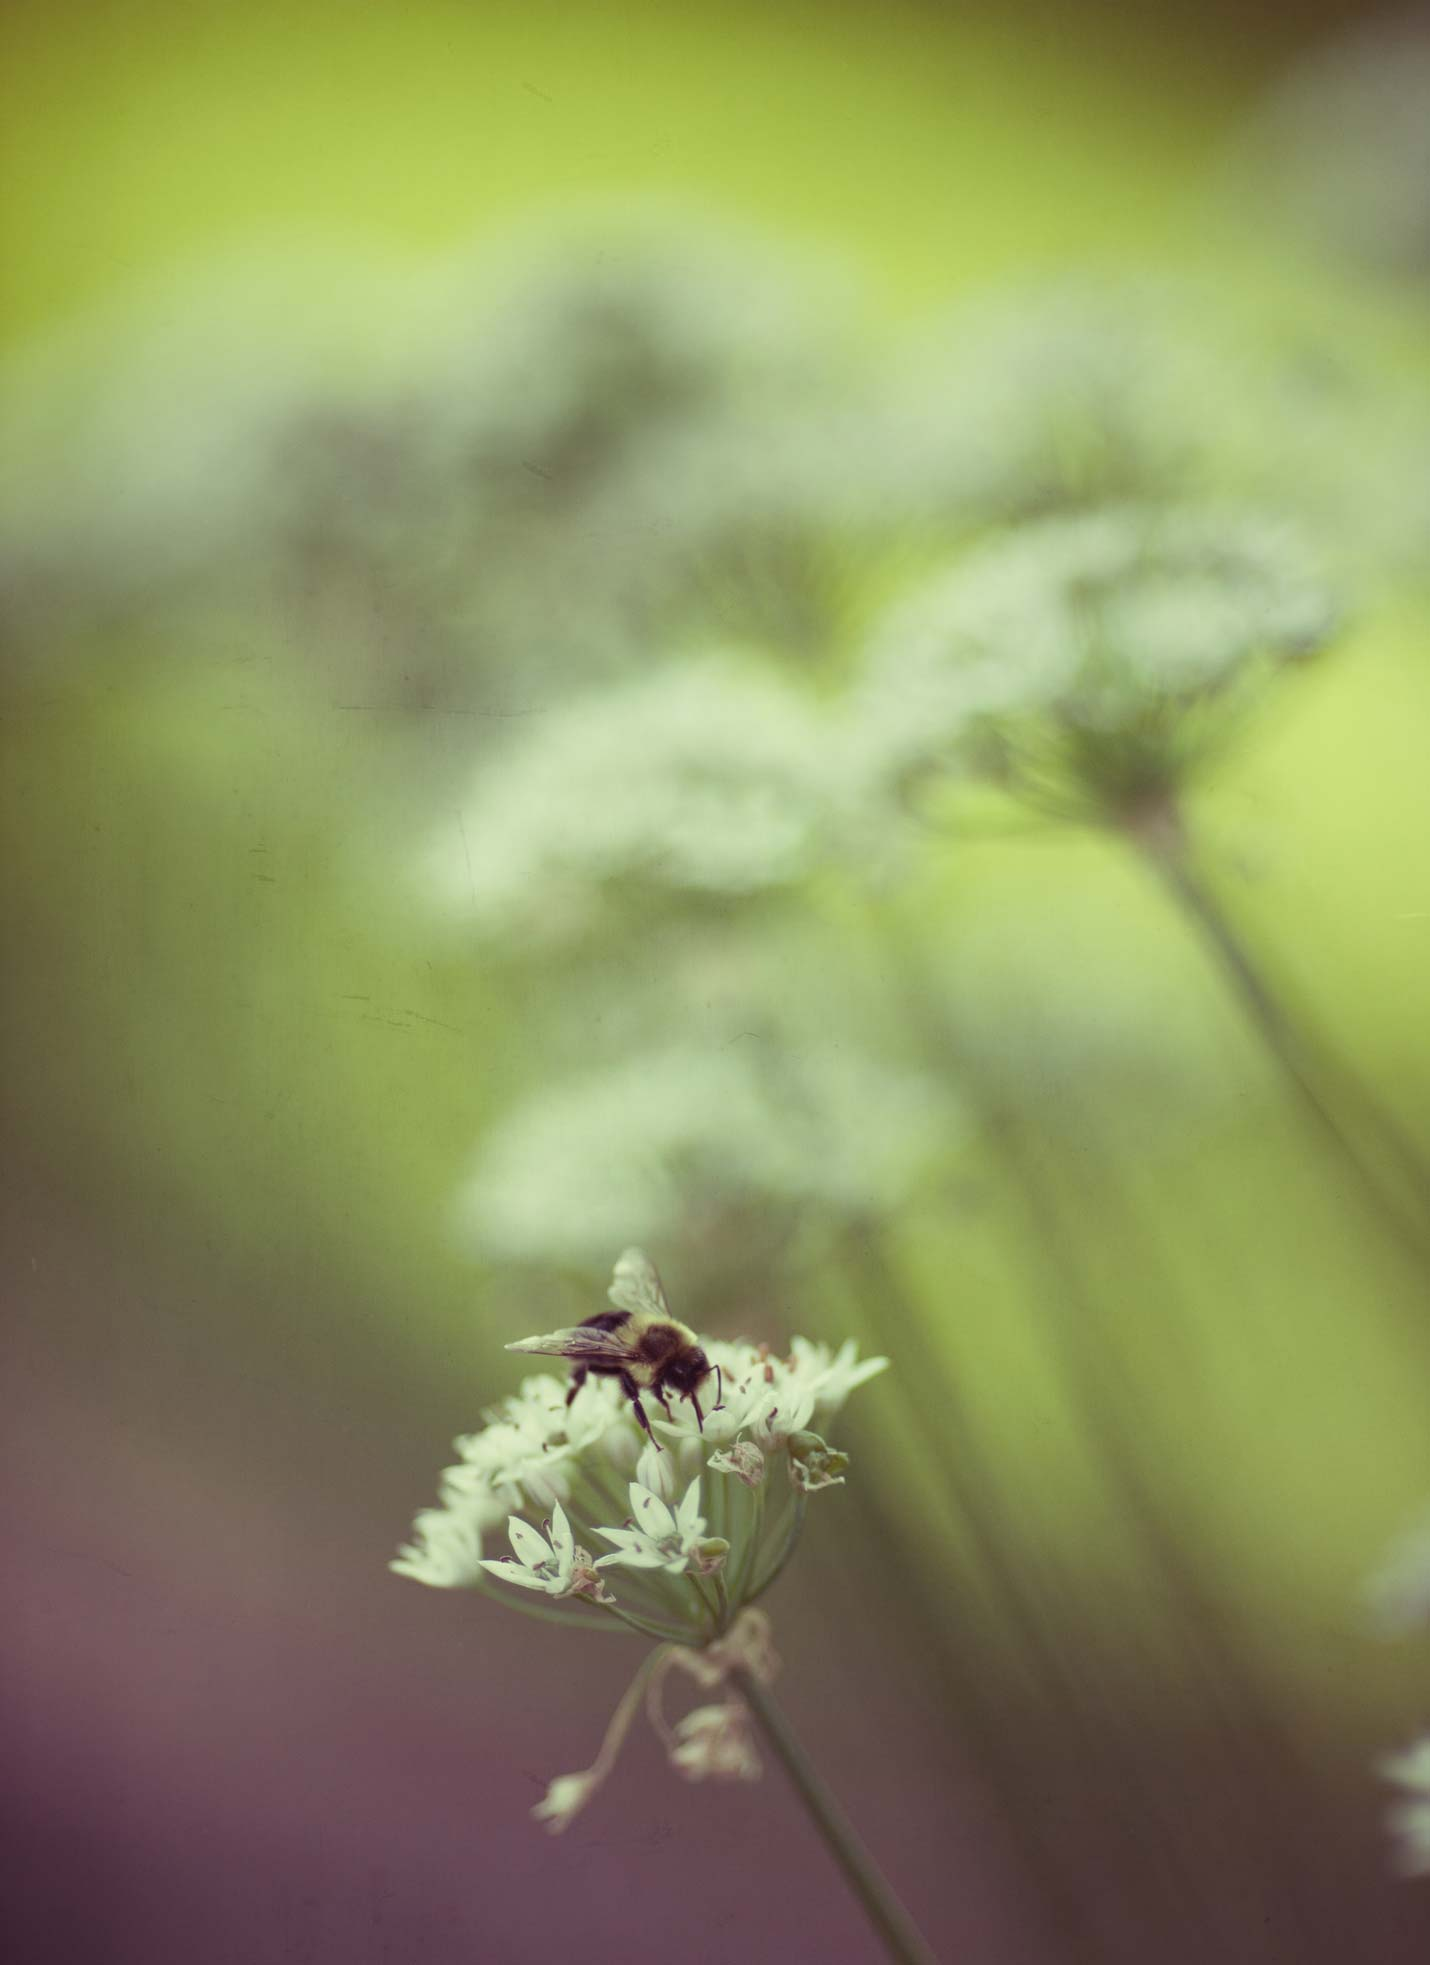 bumble-bee-in-chive-blossom.jpg